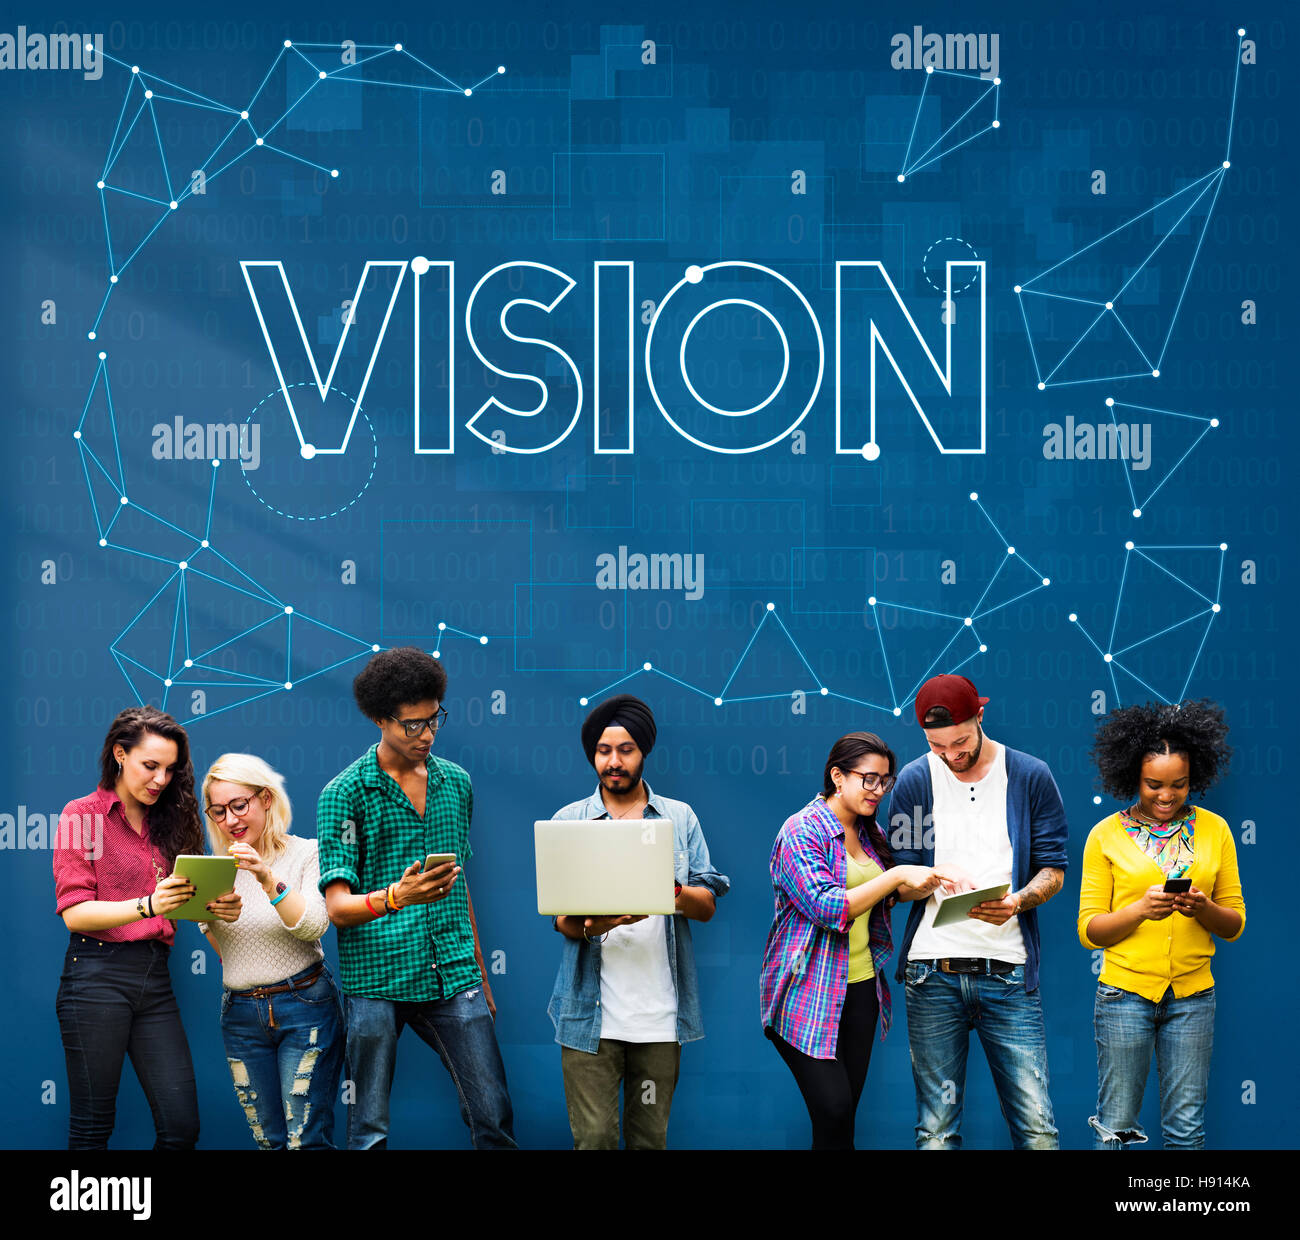 Vision Visibility Observable Noticeably Graphic Concept Stock Photo